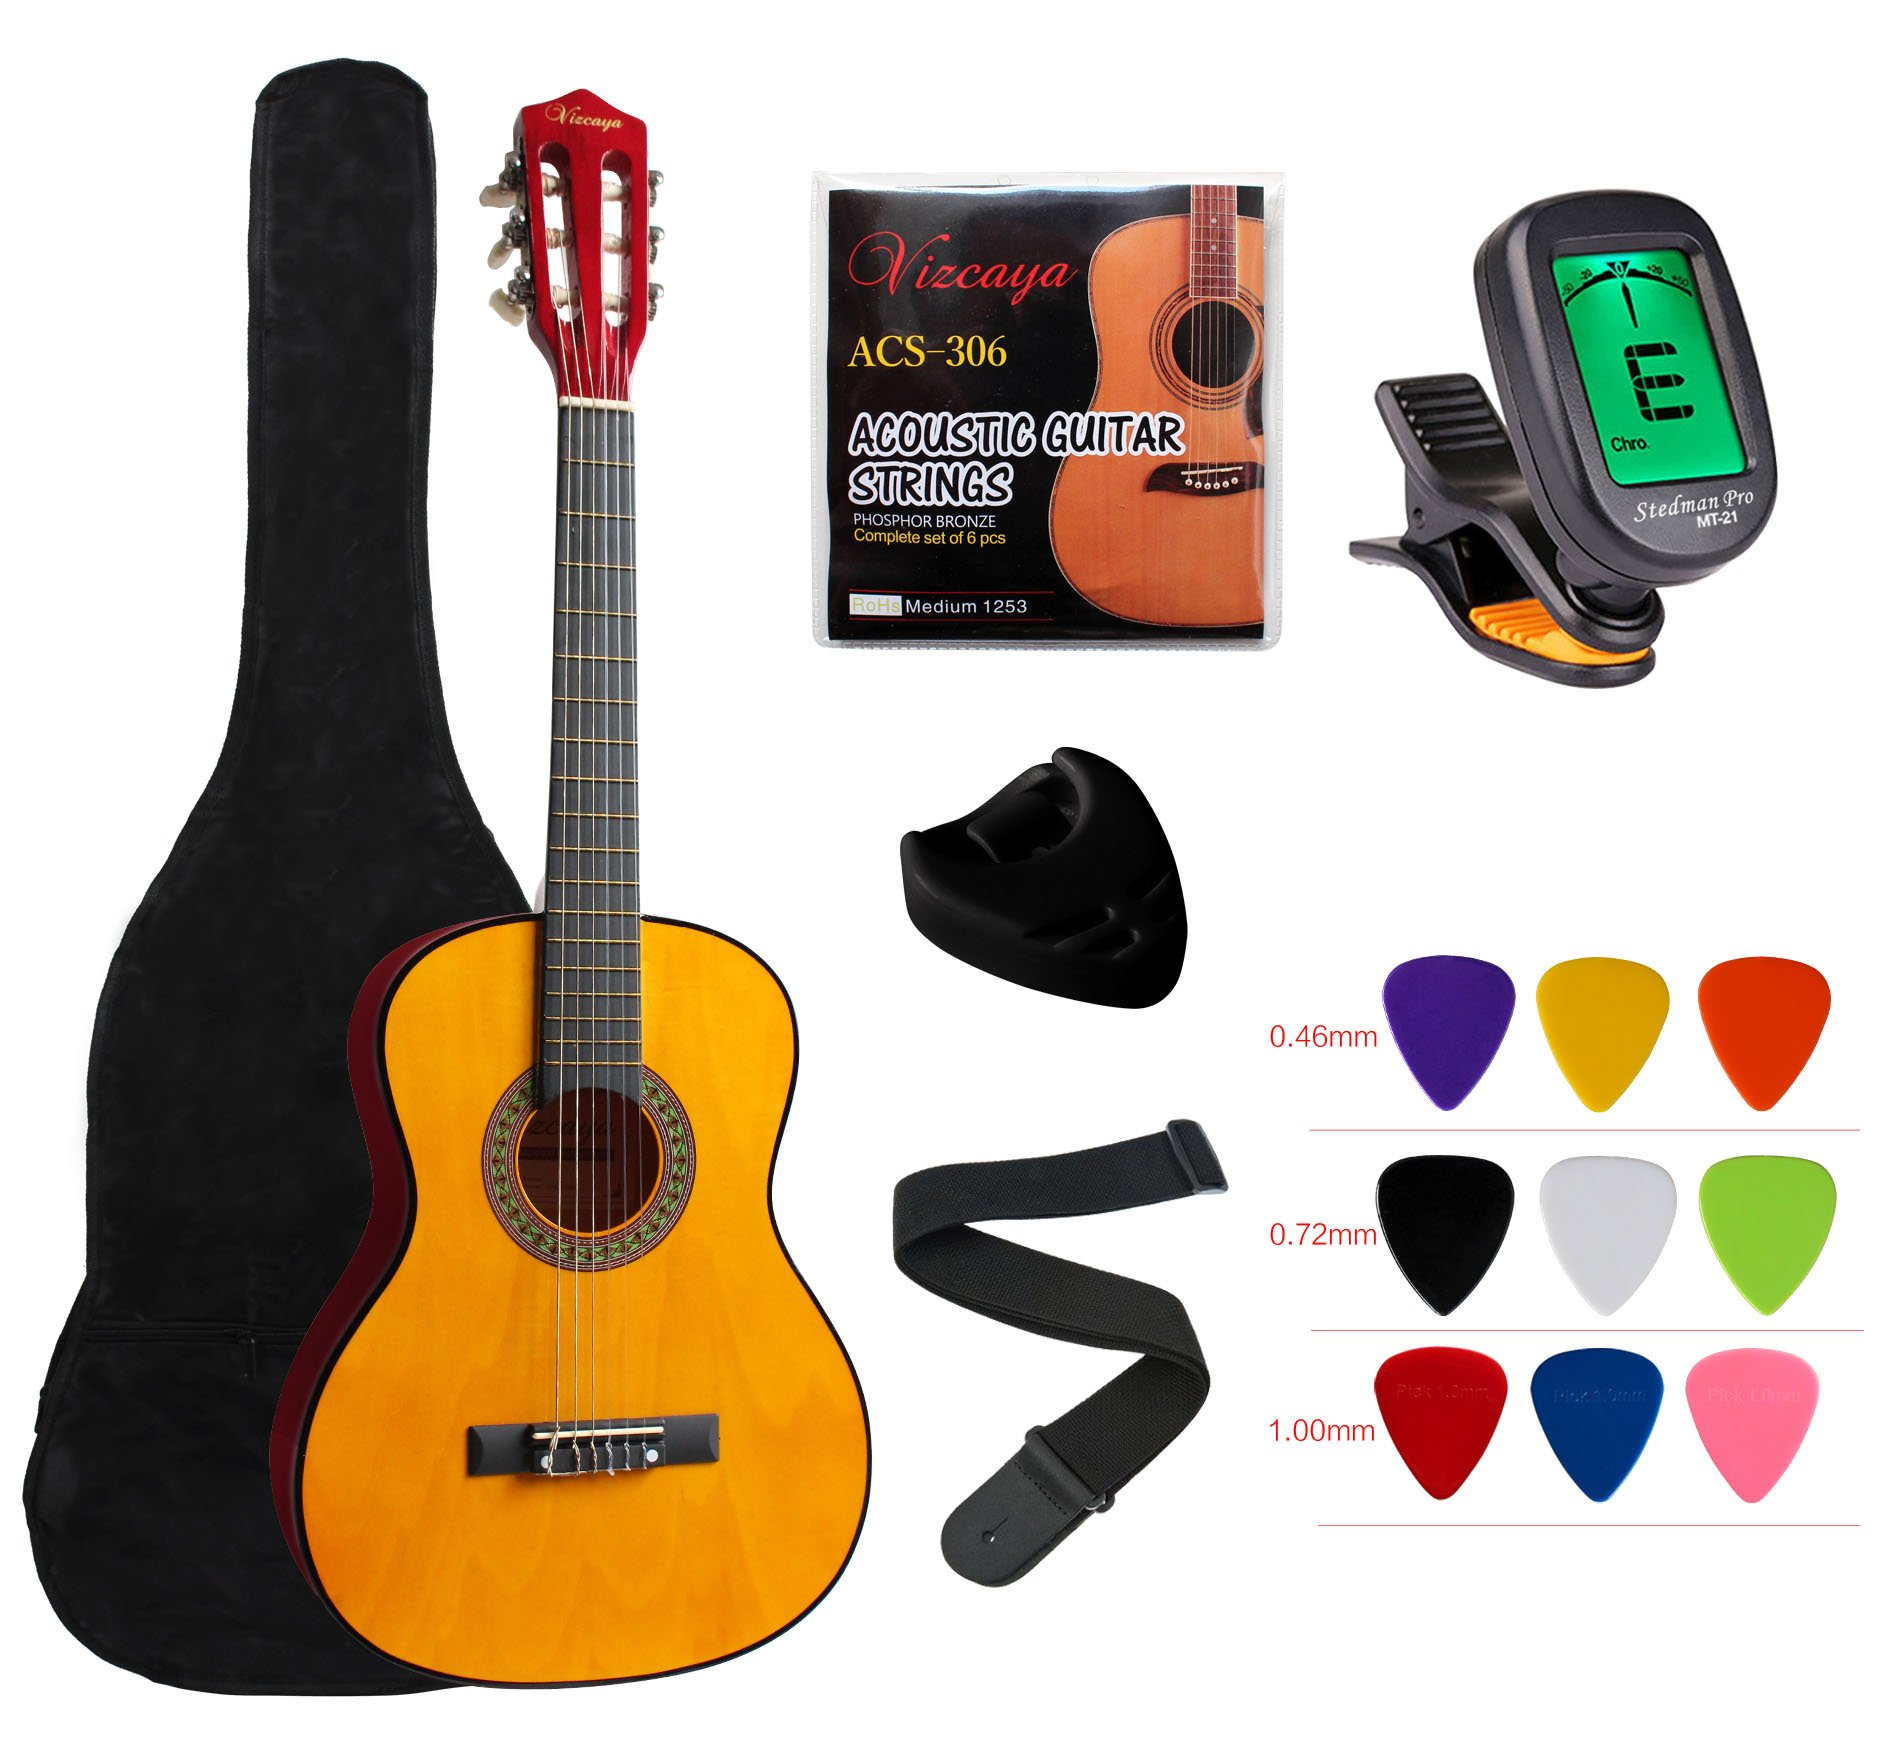 YMC Classical Guitar 1/2 Size 34'' Inch Nylon Strings Classical Acoustic Guitar Starter Pack With Carrying Case & Accessories for Beginner Students Children-Natural by YMC